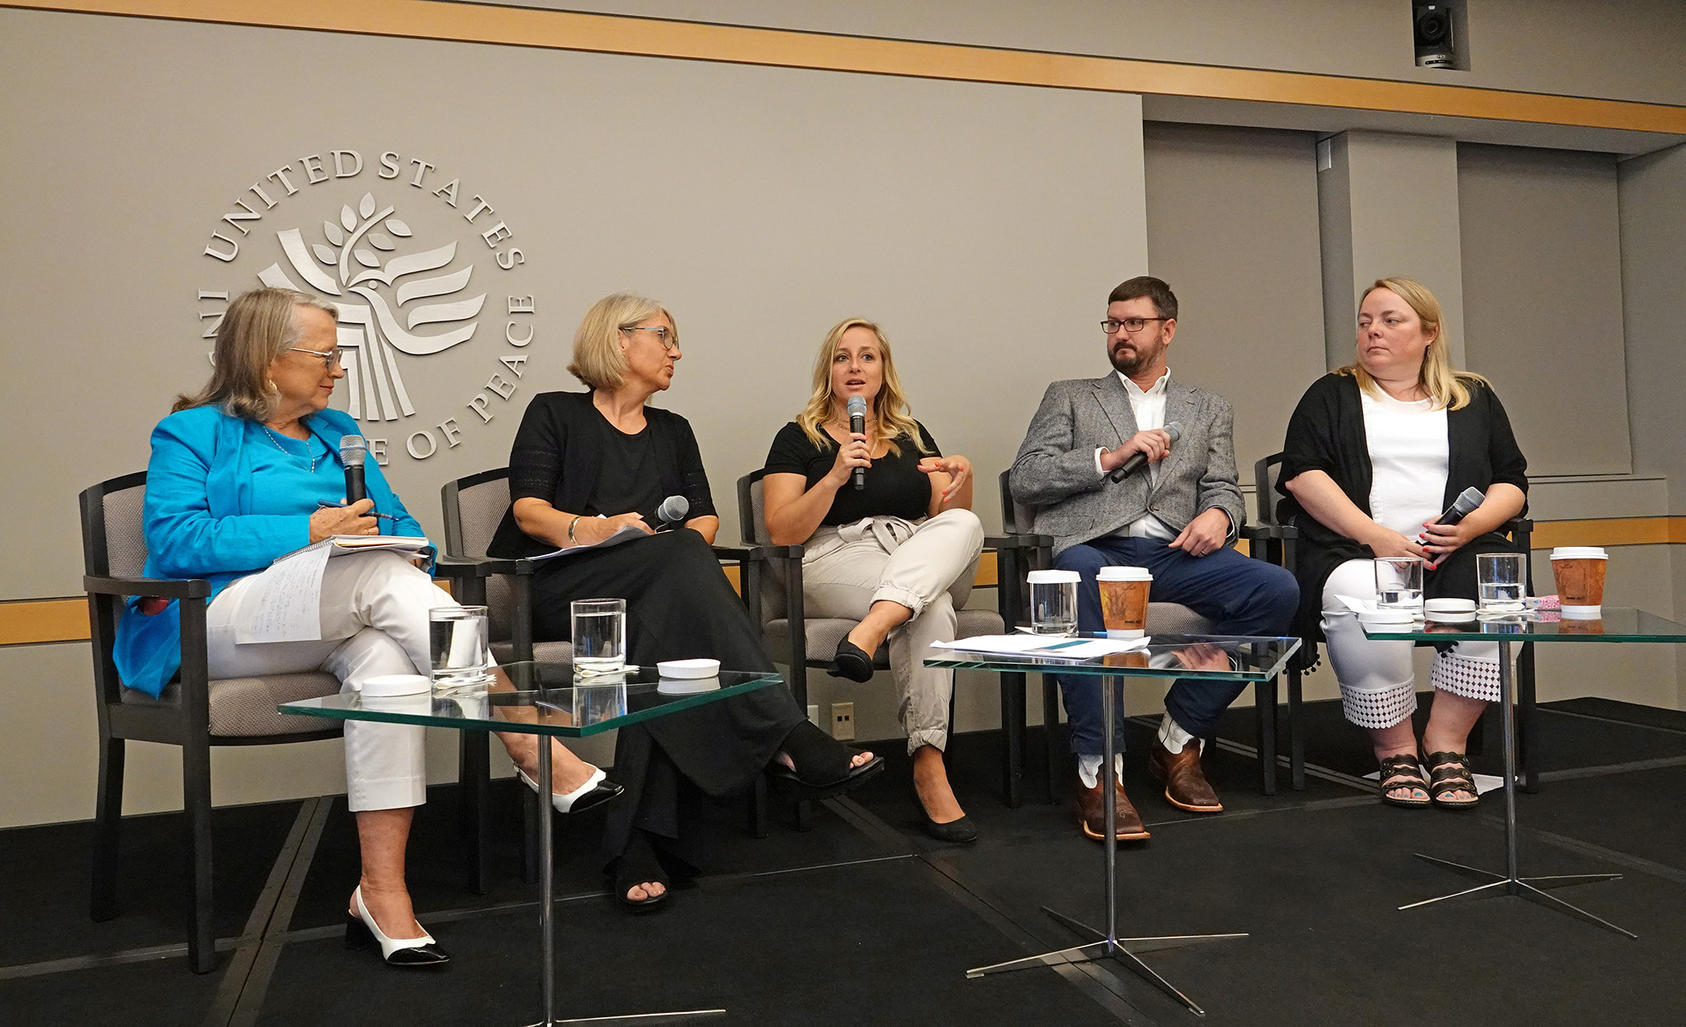 From left to right: Author Joanne Ledom-Ackerman moderates a panel of USIP's 2018 peace teachers, JoAnne Bohl, Casandra Bates, Ryan Adams and Jennifer O'Boyle, as they discuss their experiences in the program.